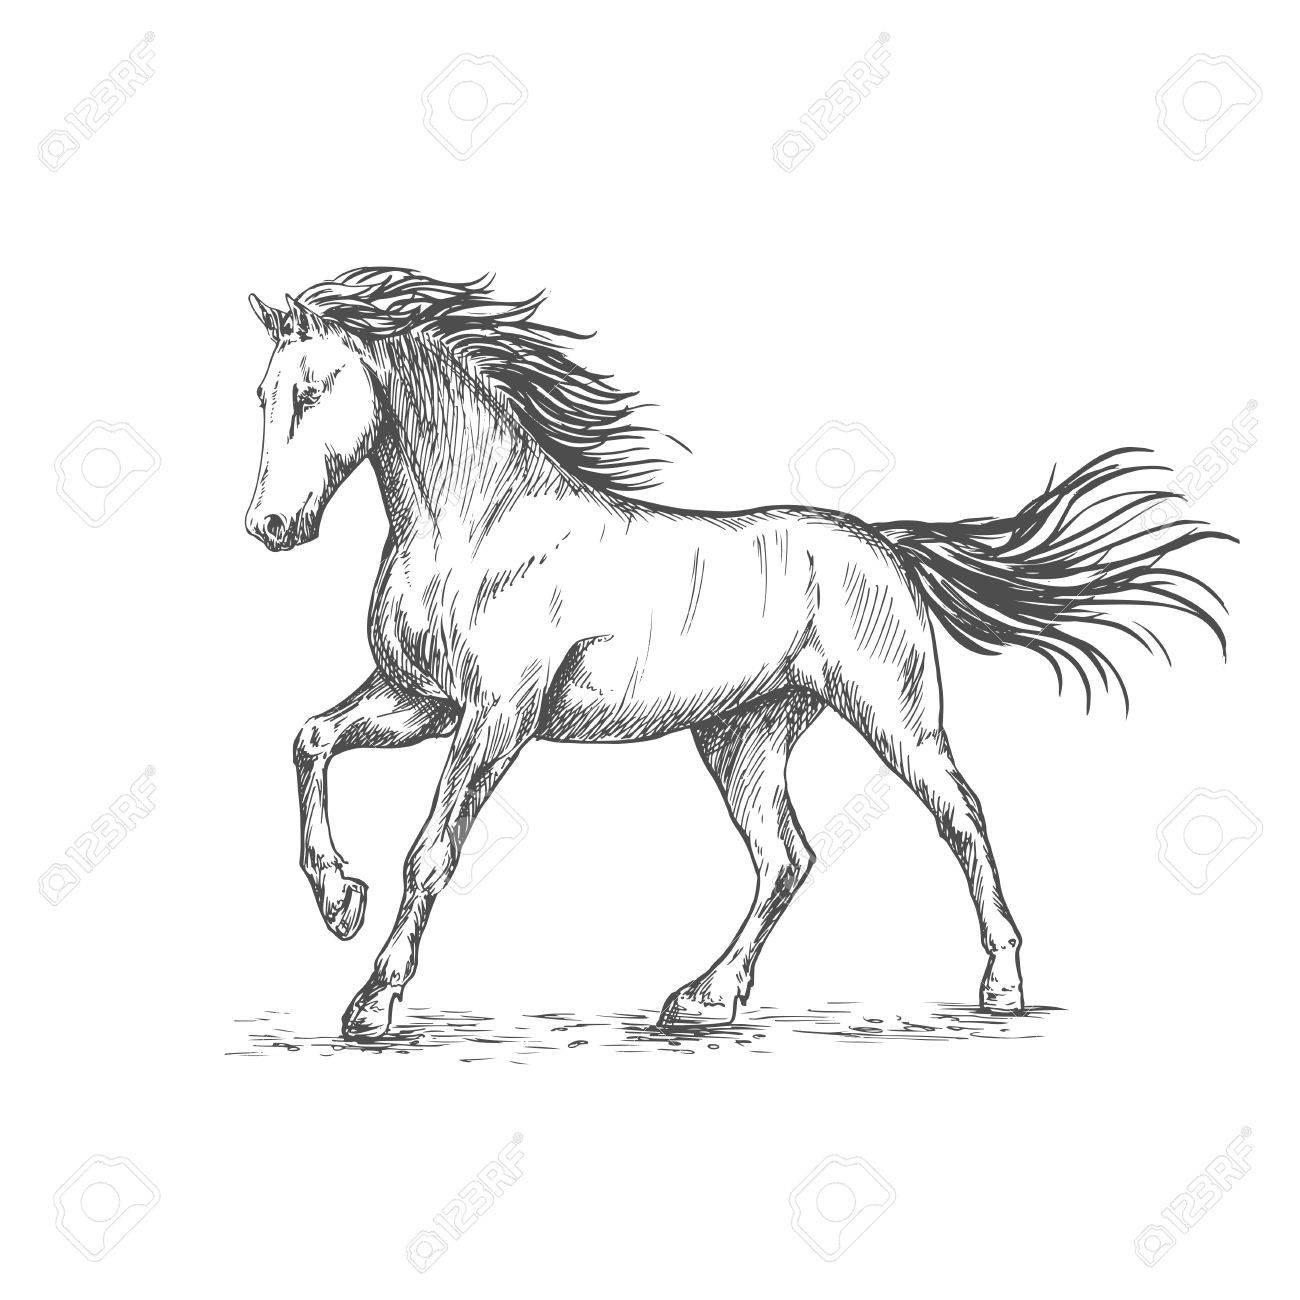 Vector white horse with stamping hoof pencil sketch portrait prancing mustang with mane and tail waving by wind